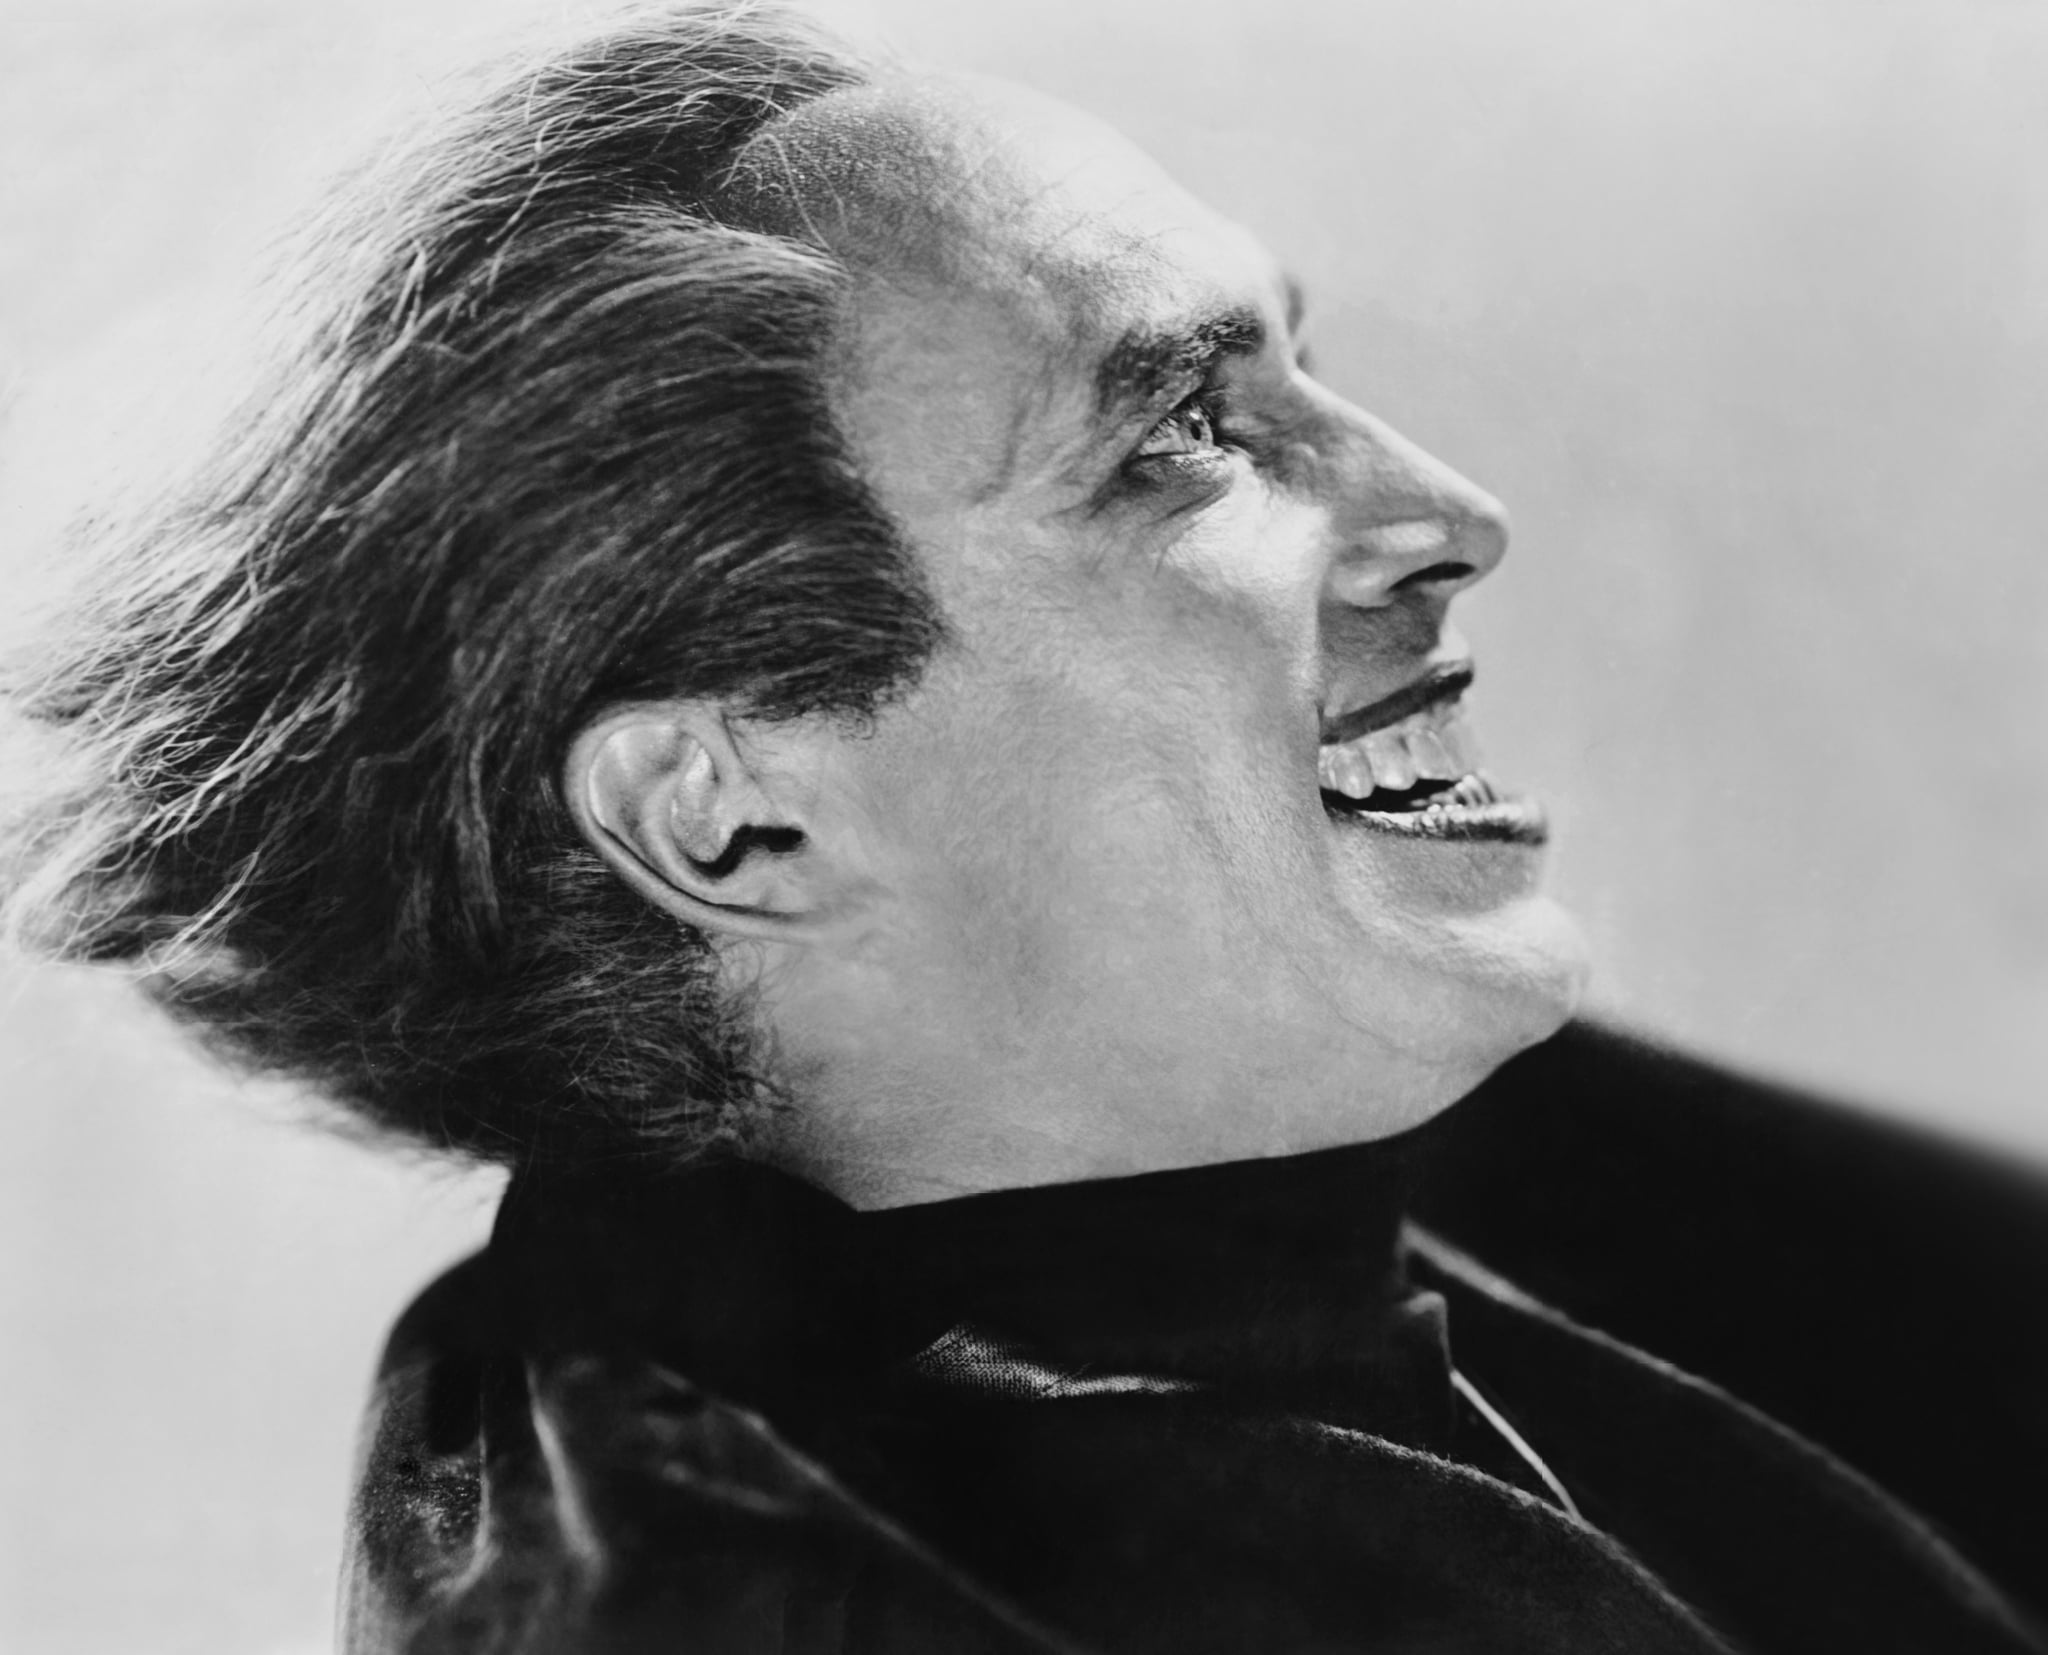 THE MAN WHO LAUGHS, Conrad Veidt, 1928